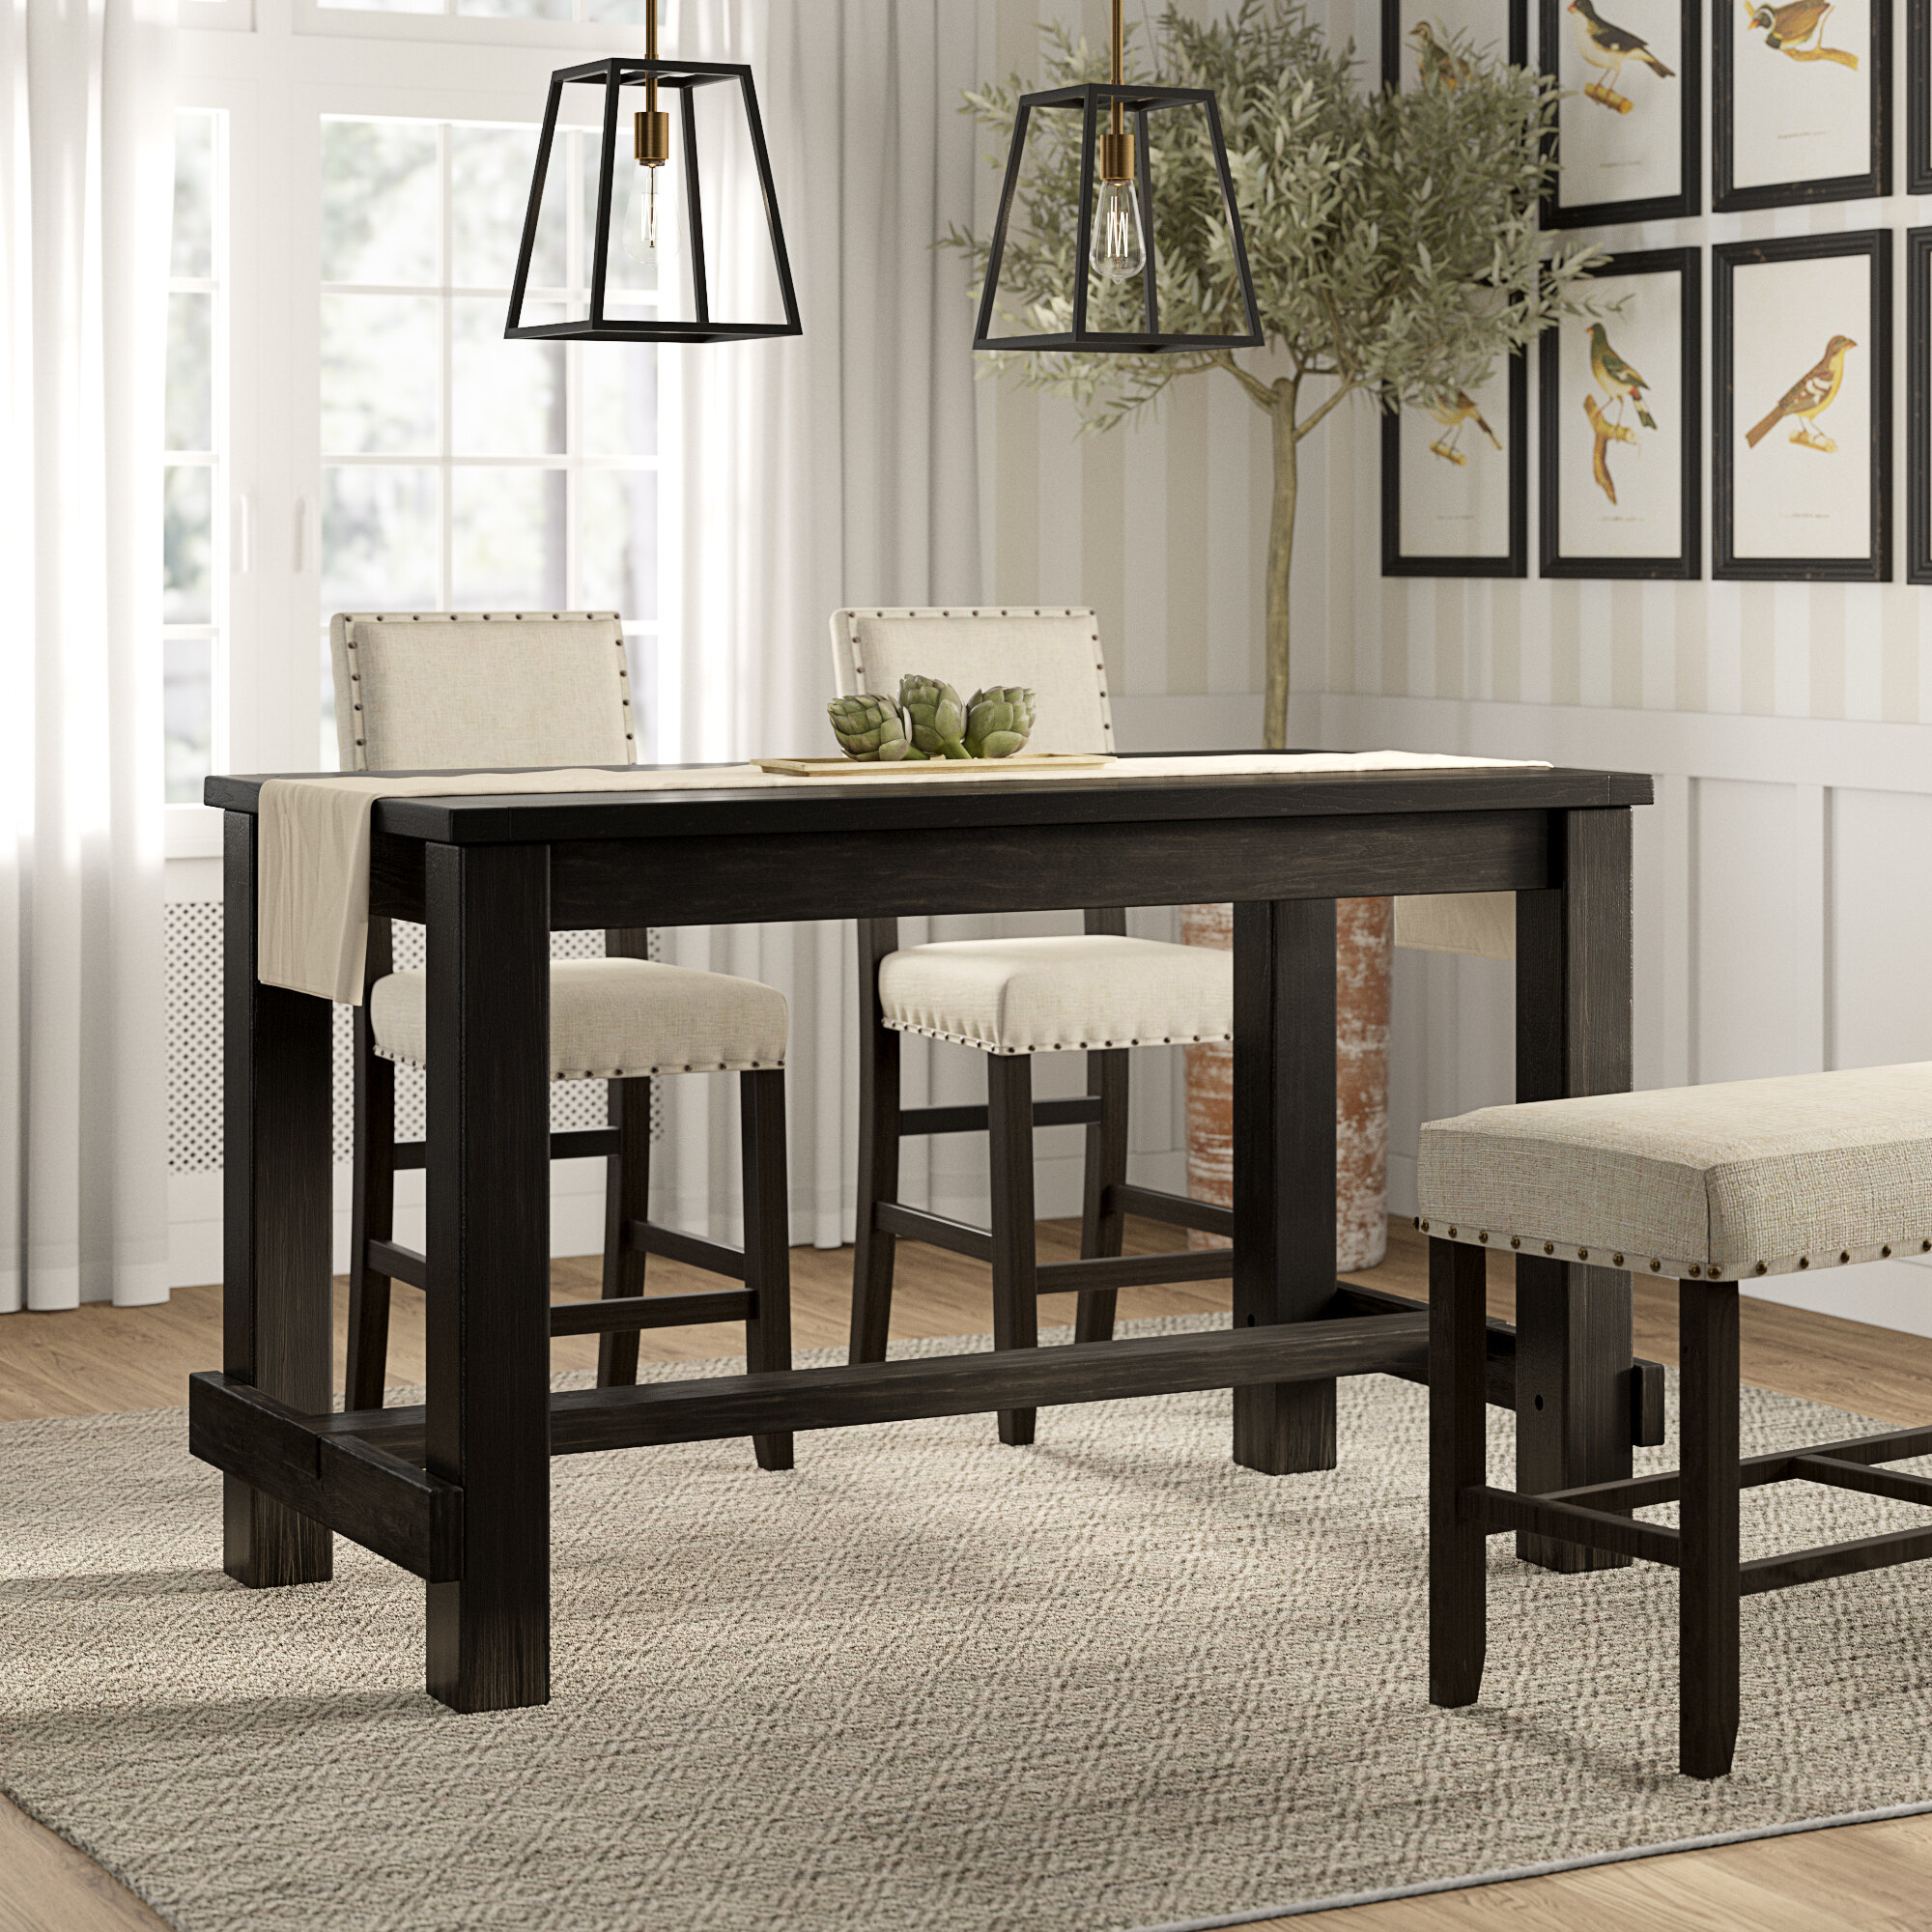 Greyleigh Rockport Counter Height Dining Table Reviews Wayfair